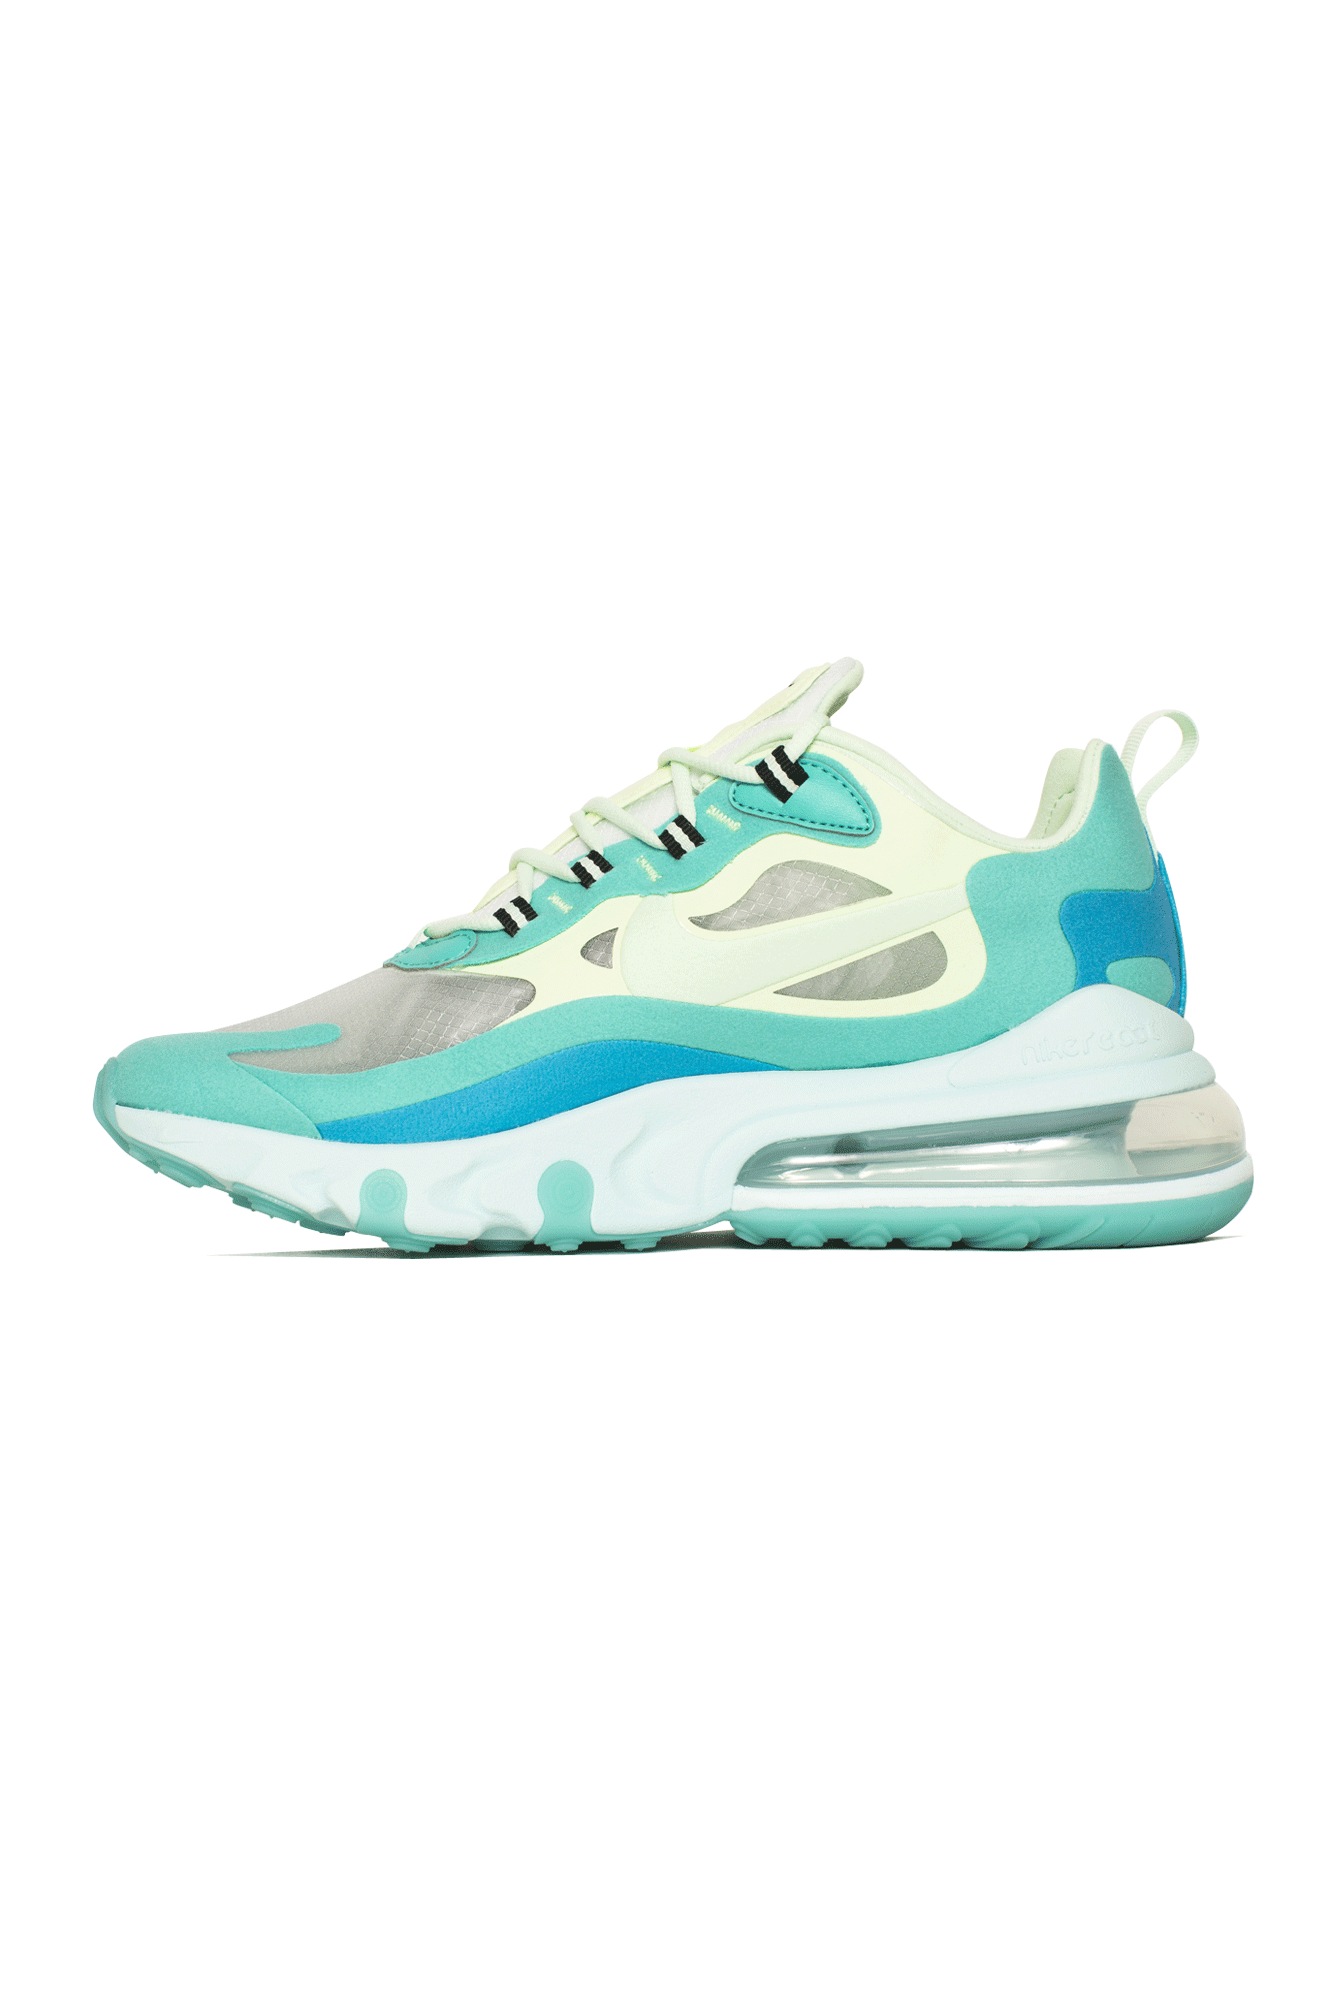 Air Max 270 React Sneaker in Green. Size 6 (also in 6.5,7,7.5).